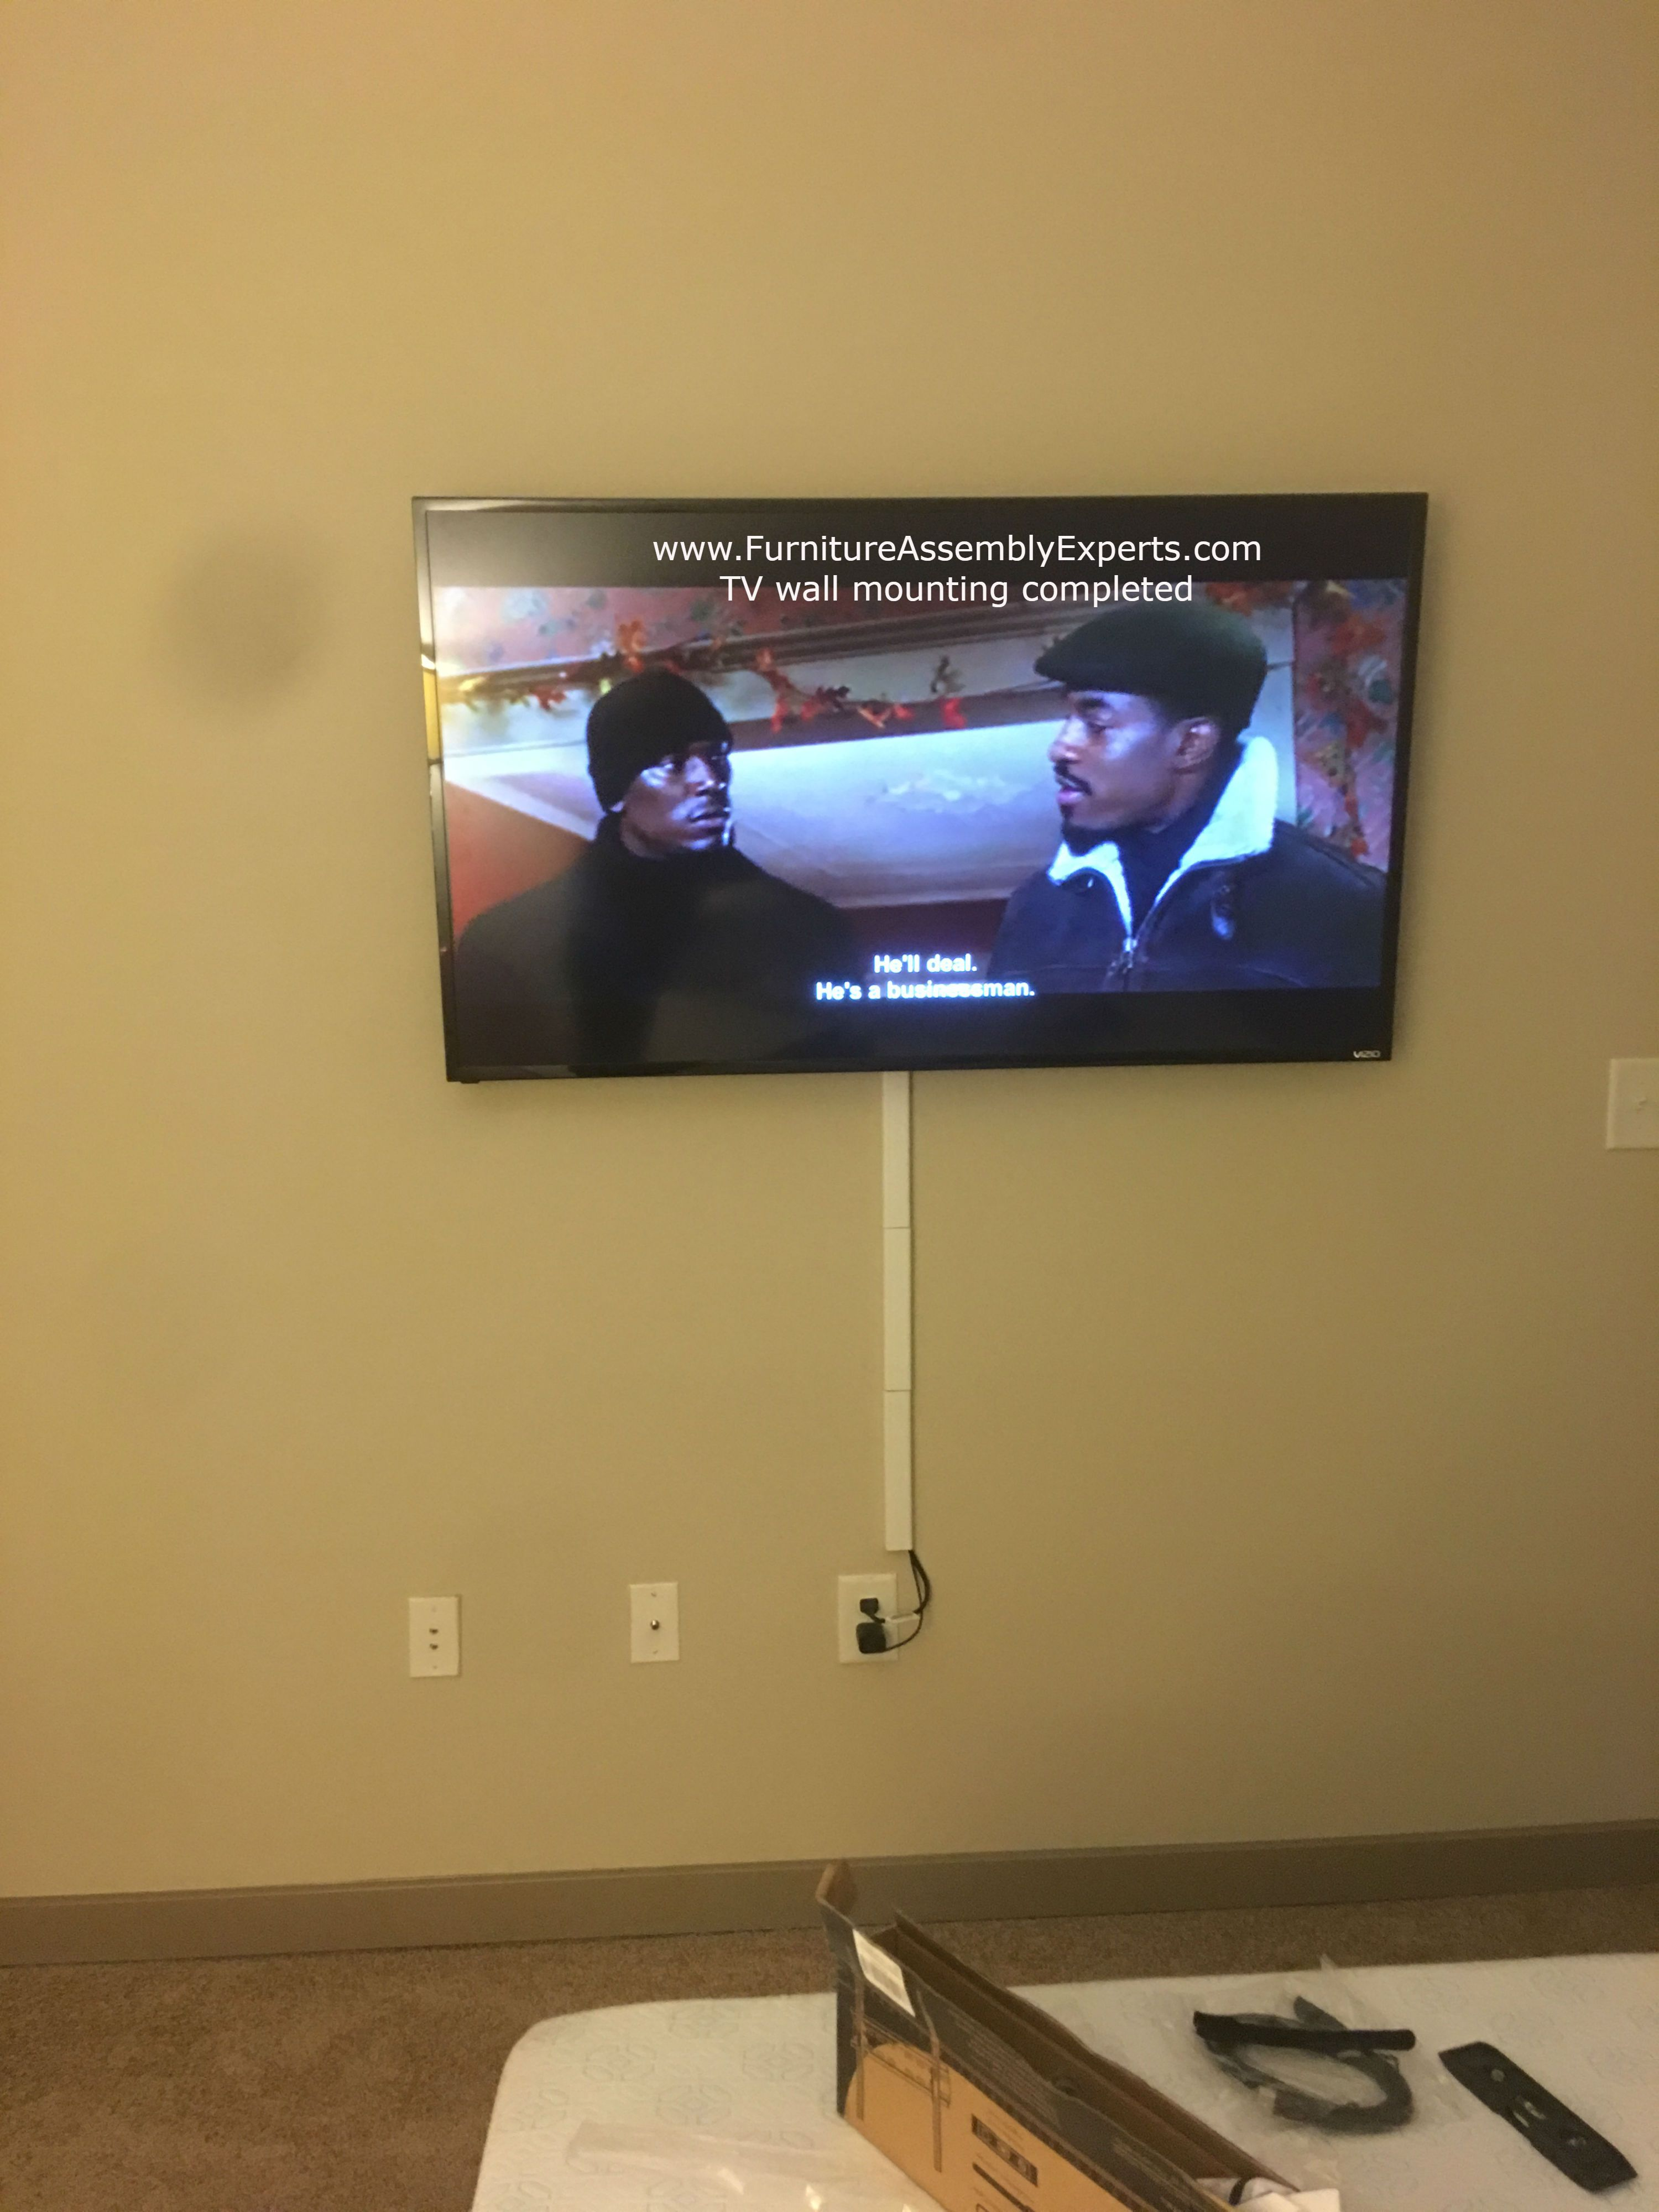 Tv Wall Installation Completed For A Customer In Rising Sun Maryland By Professionals From Furniture Assembly Expe Tv Wall Installation Tv Wall Wall Mounted Tv